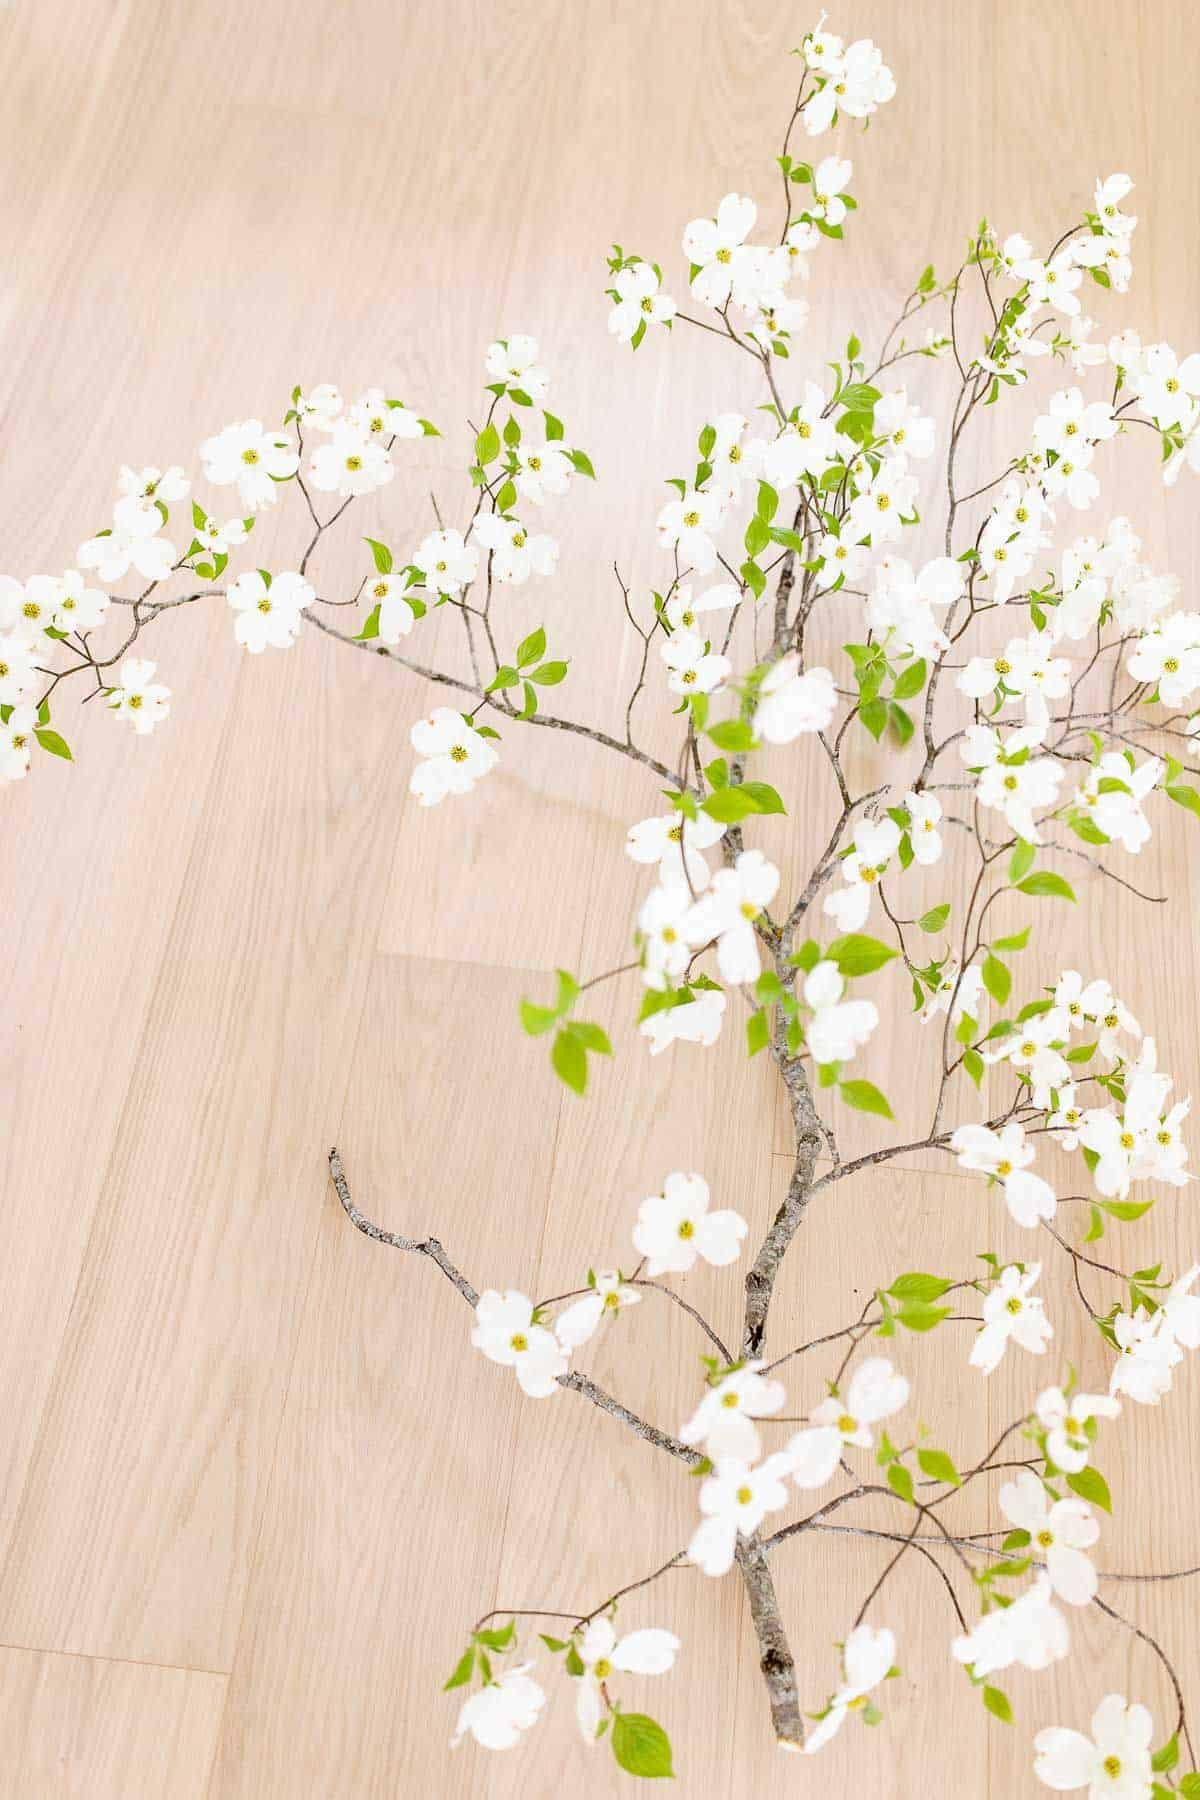 White oak floors with a branch of white blooming dogwood laying across.